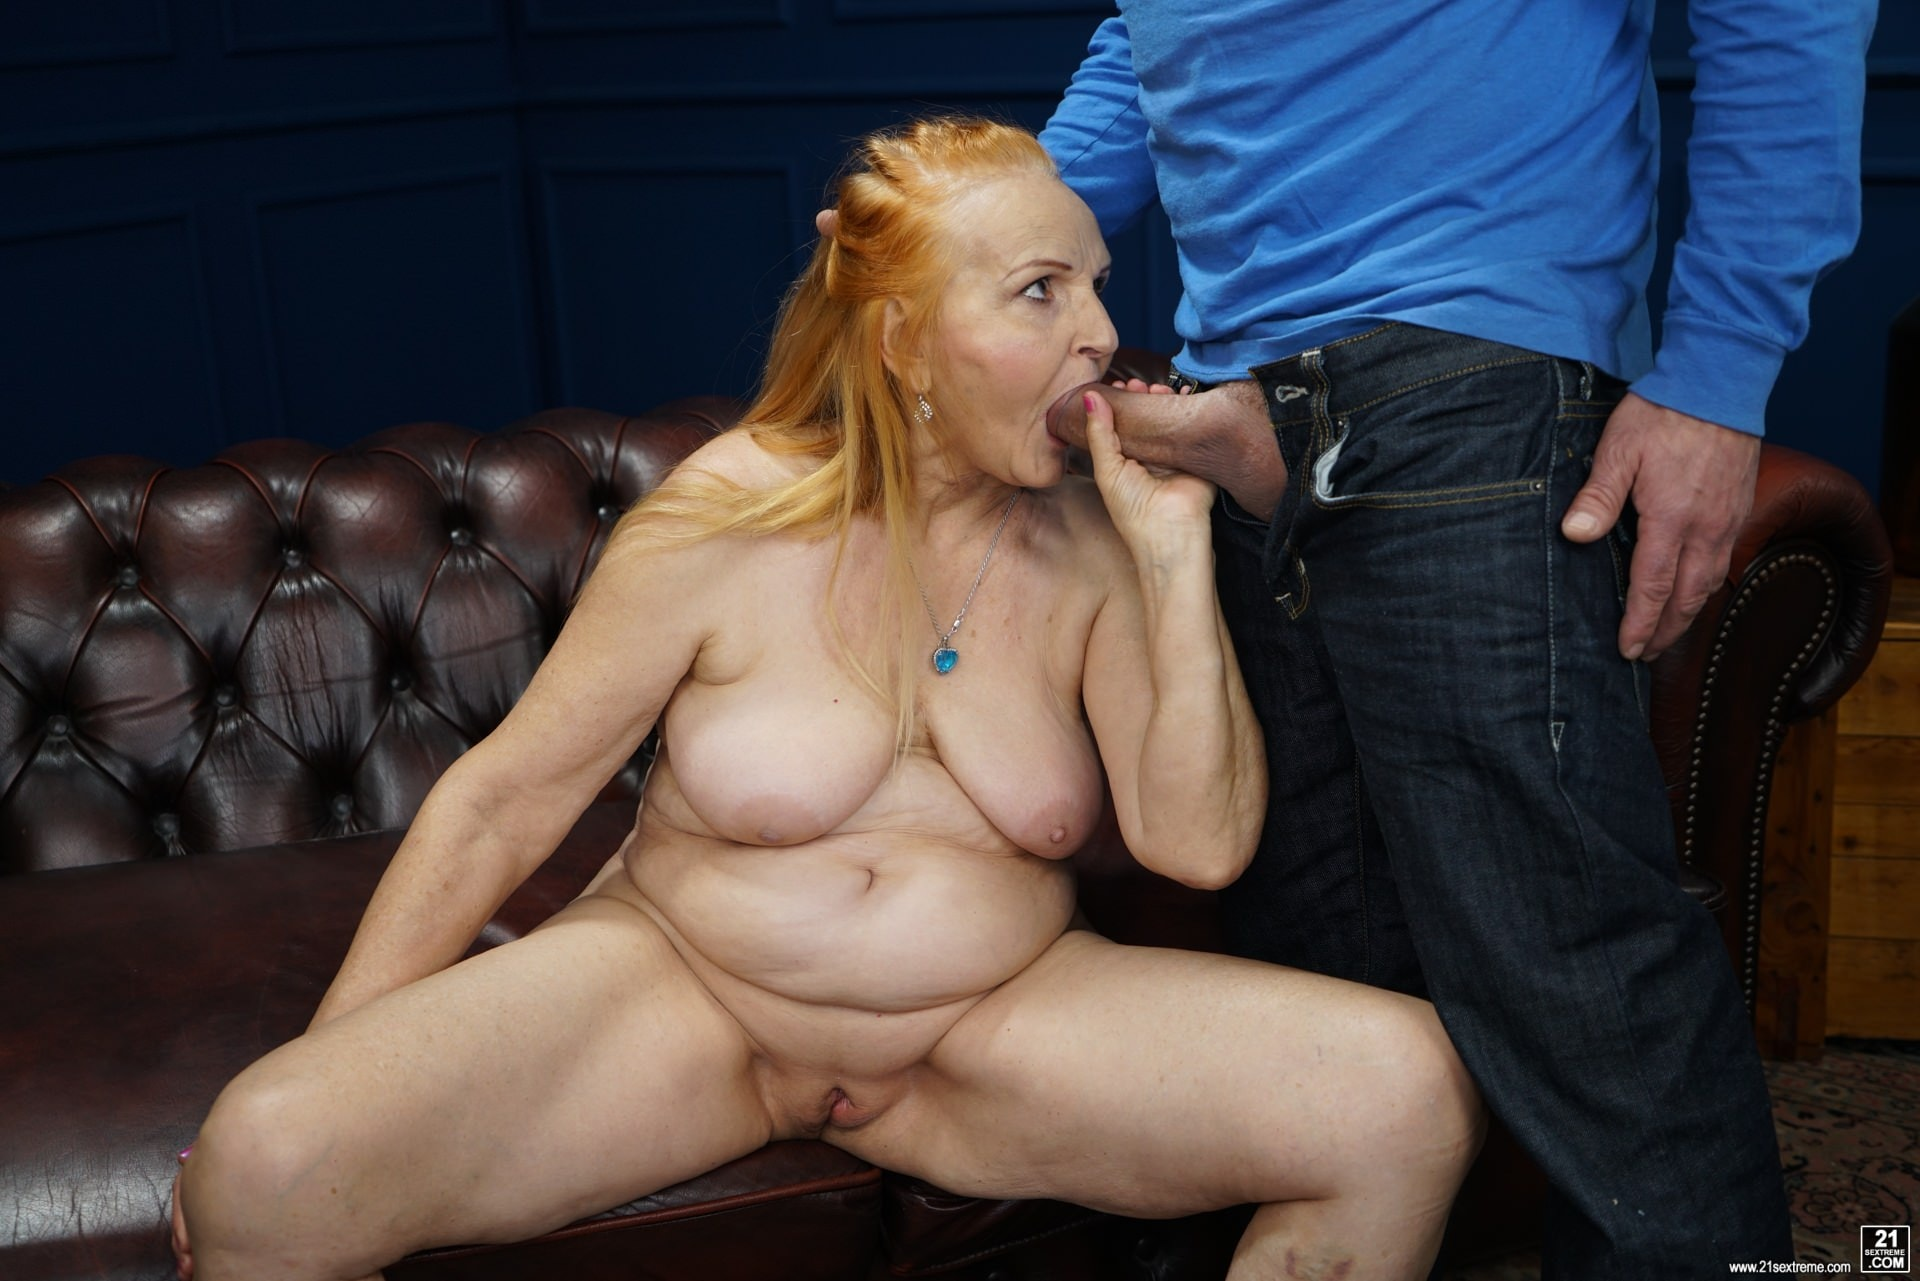 21Sextury 'Happiness Online' starring Marianne (Photo 28)